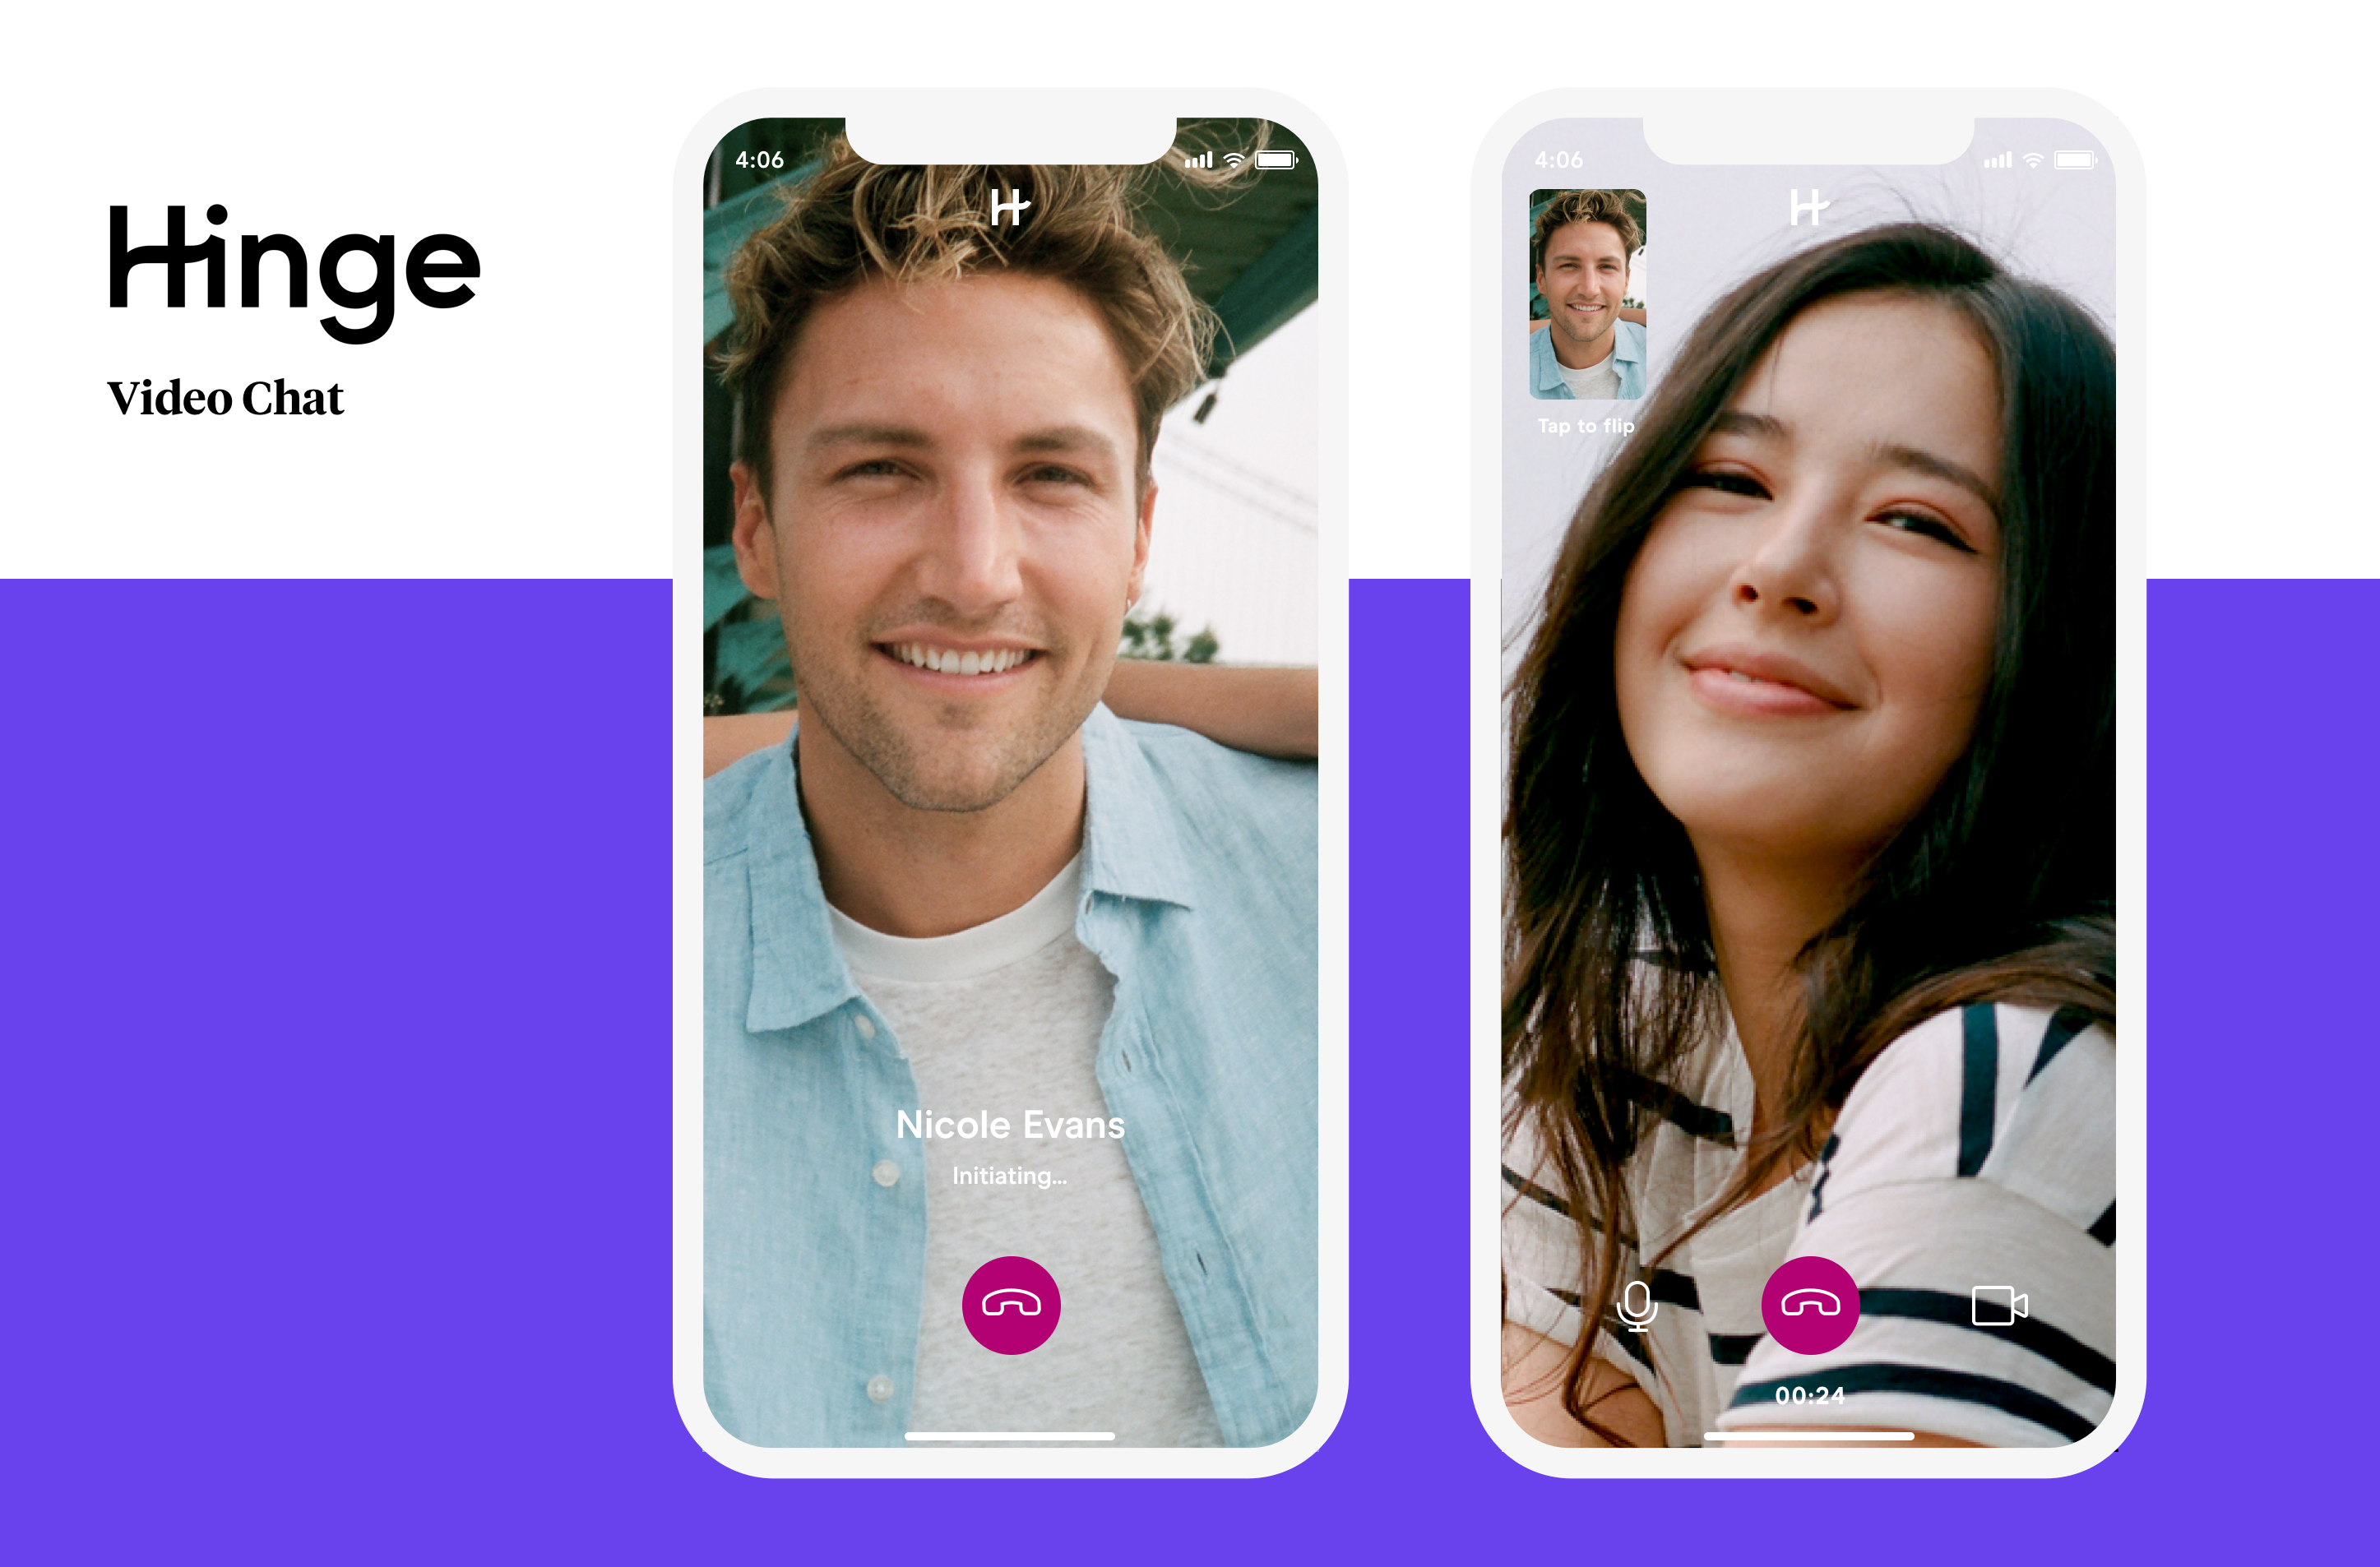 Hinge Officially Launches New Research Division and Begins Testing Video Calls